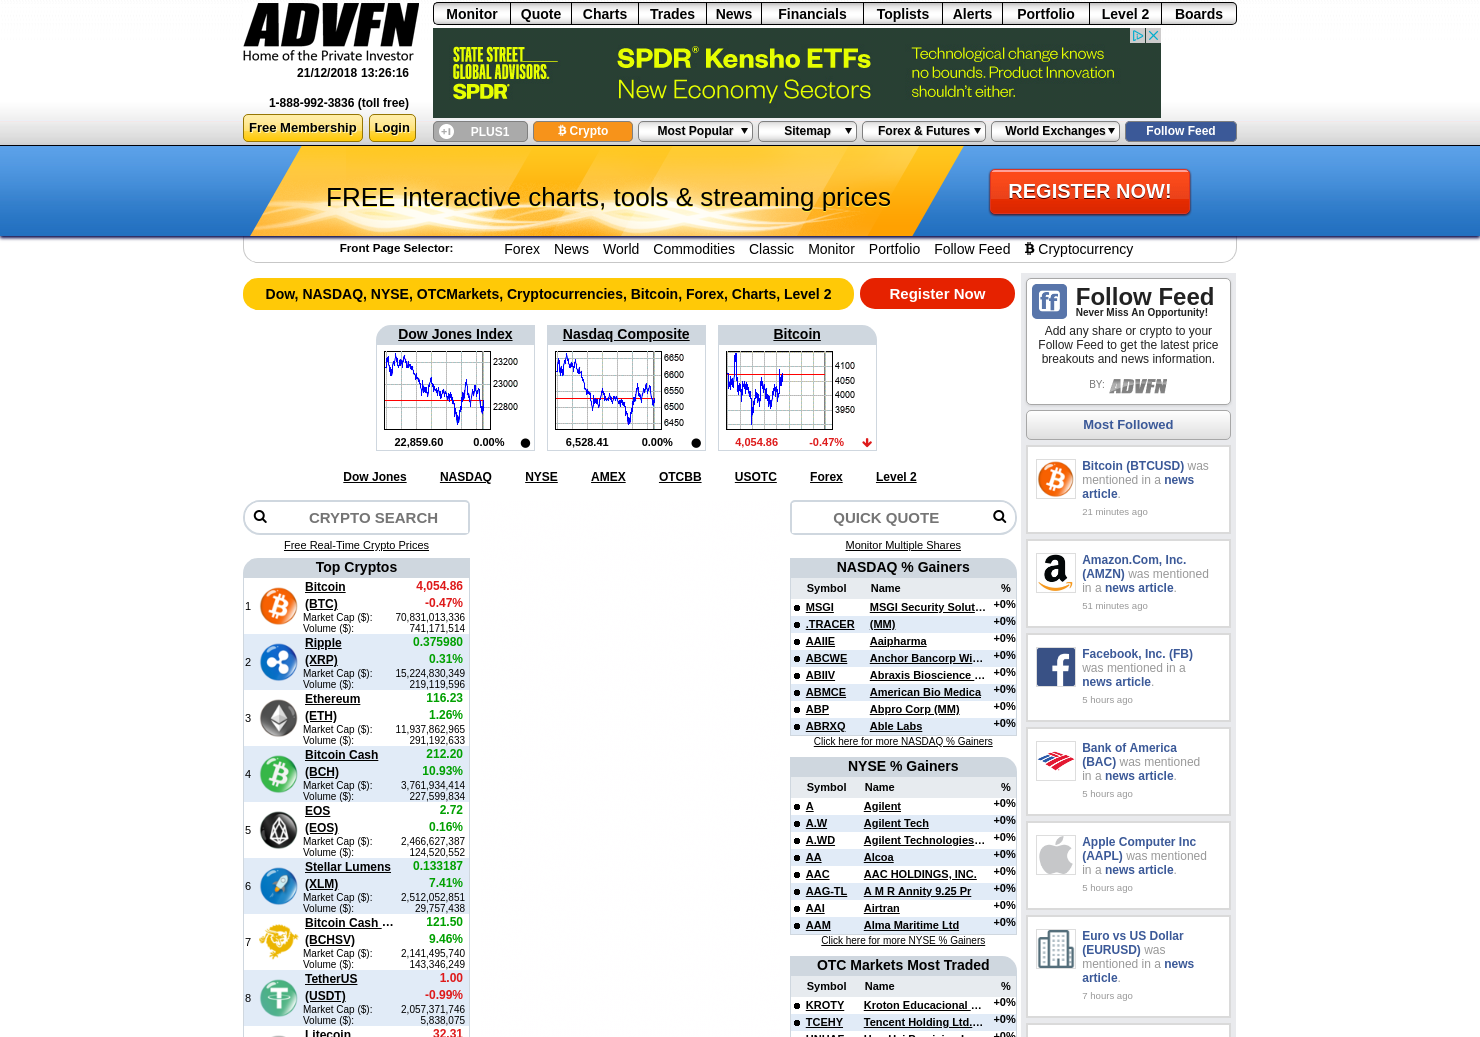 ADVFN Home Page